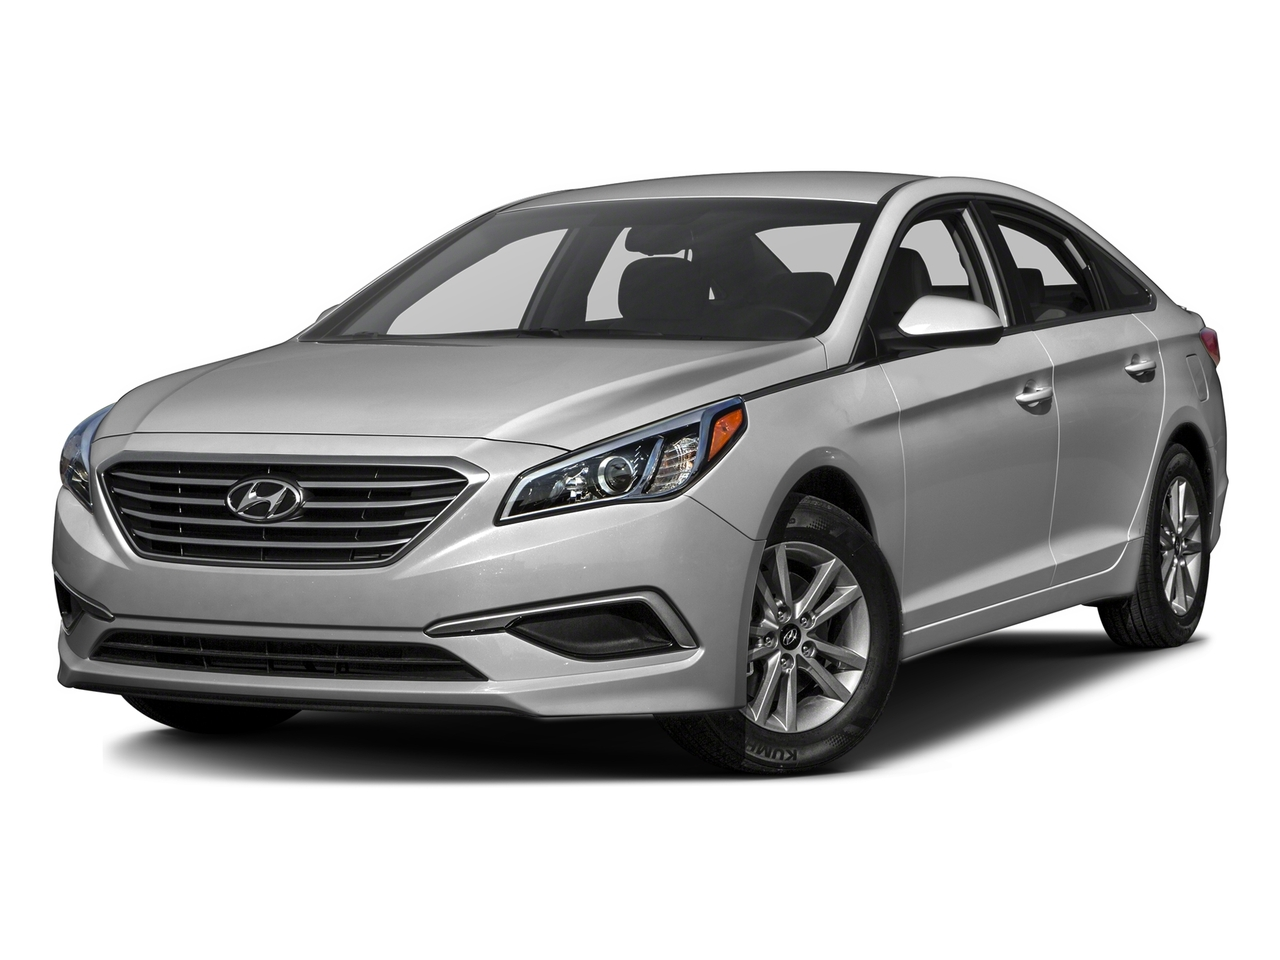 2016 Hyundai Sonata LIMITED 4dr Car Slide